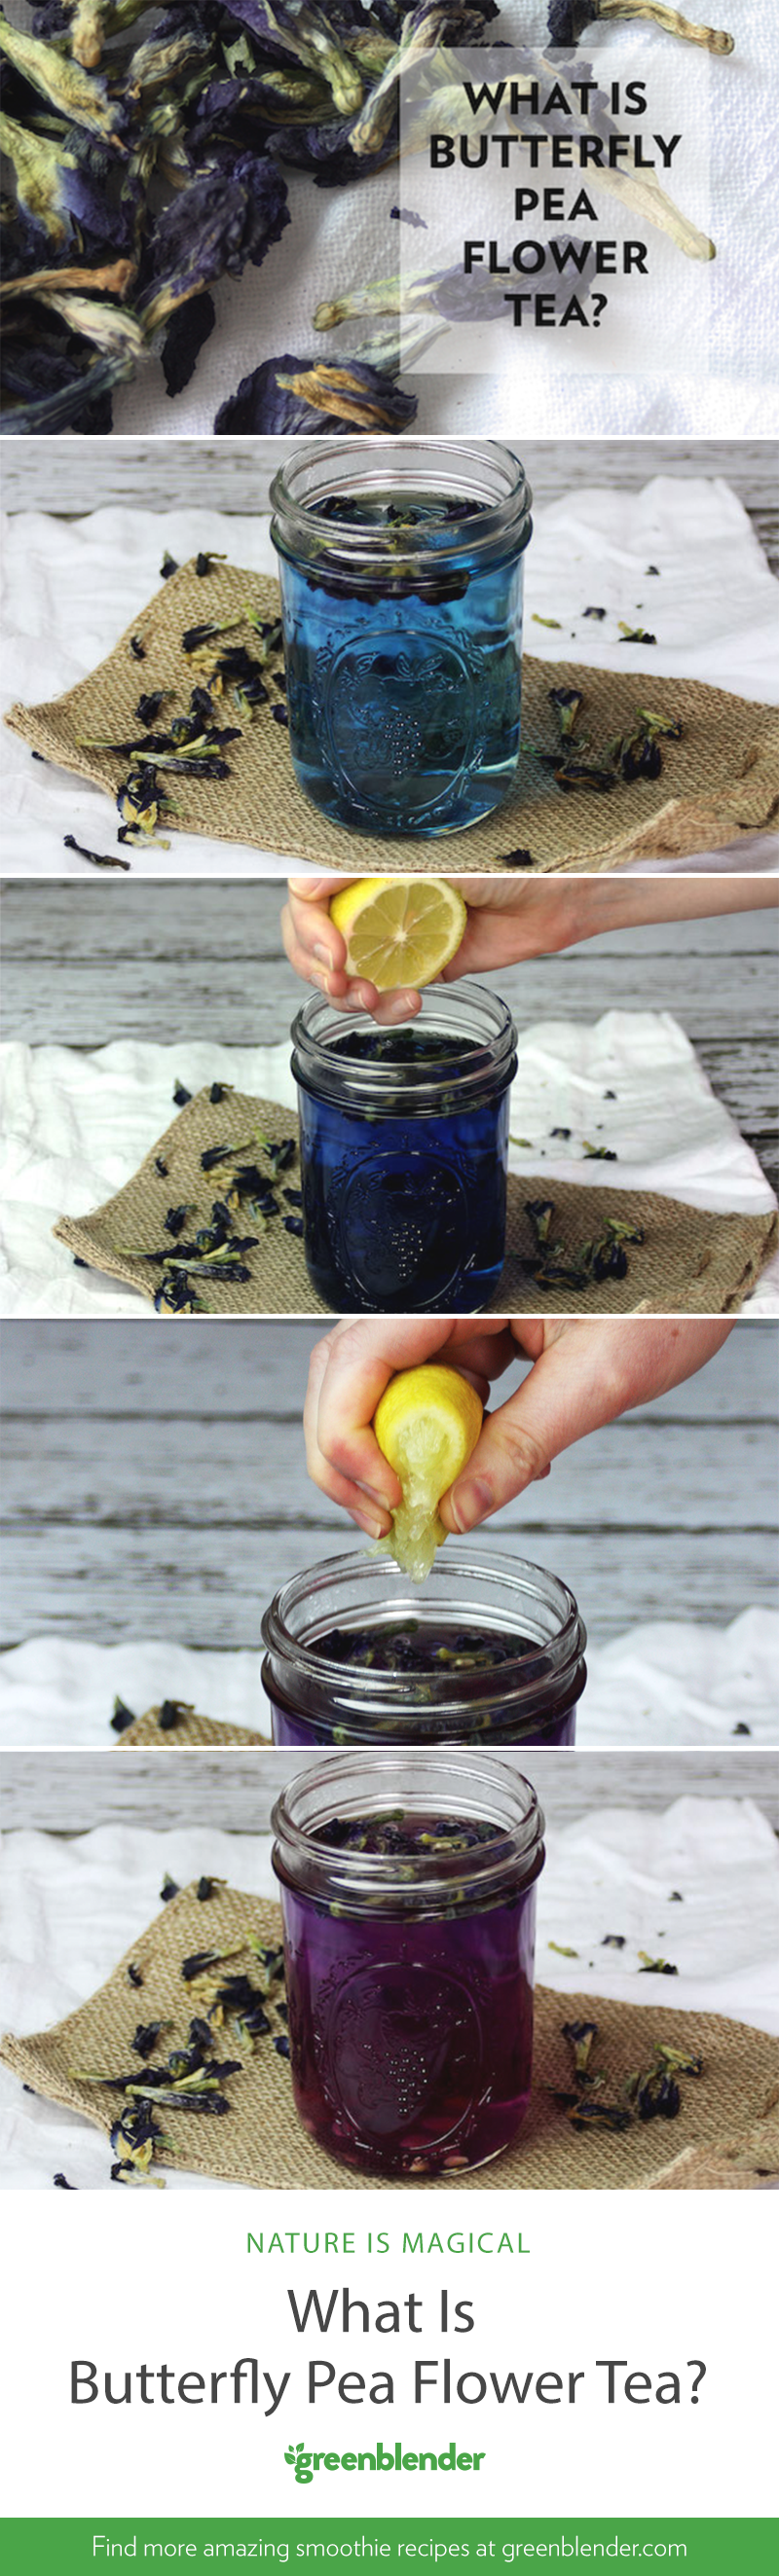 What Is Butterfly Pea Flower Tea? Butterfly pea flower